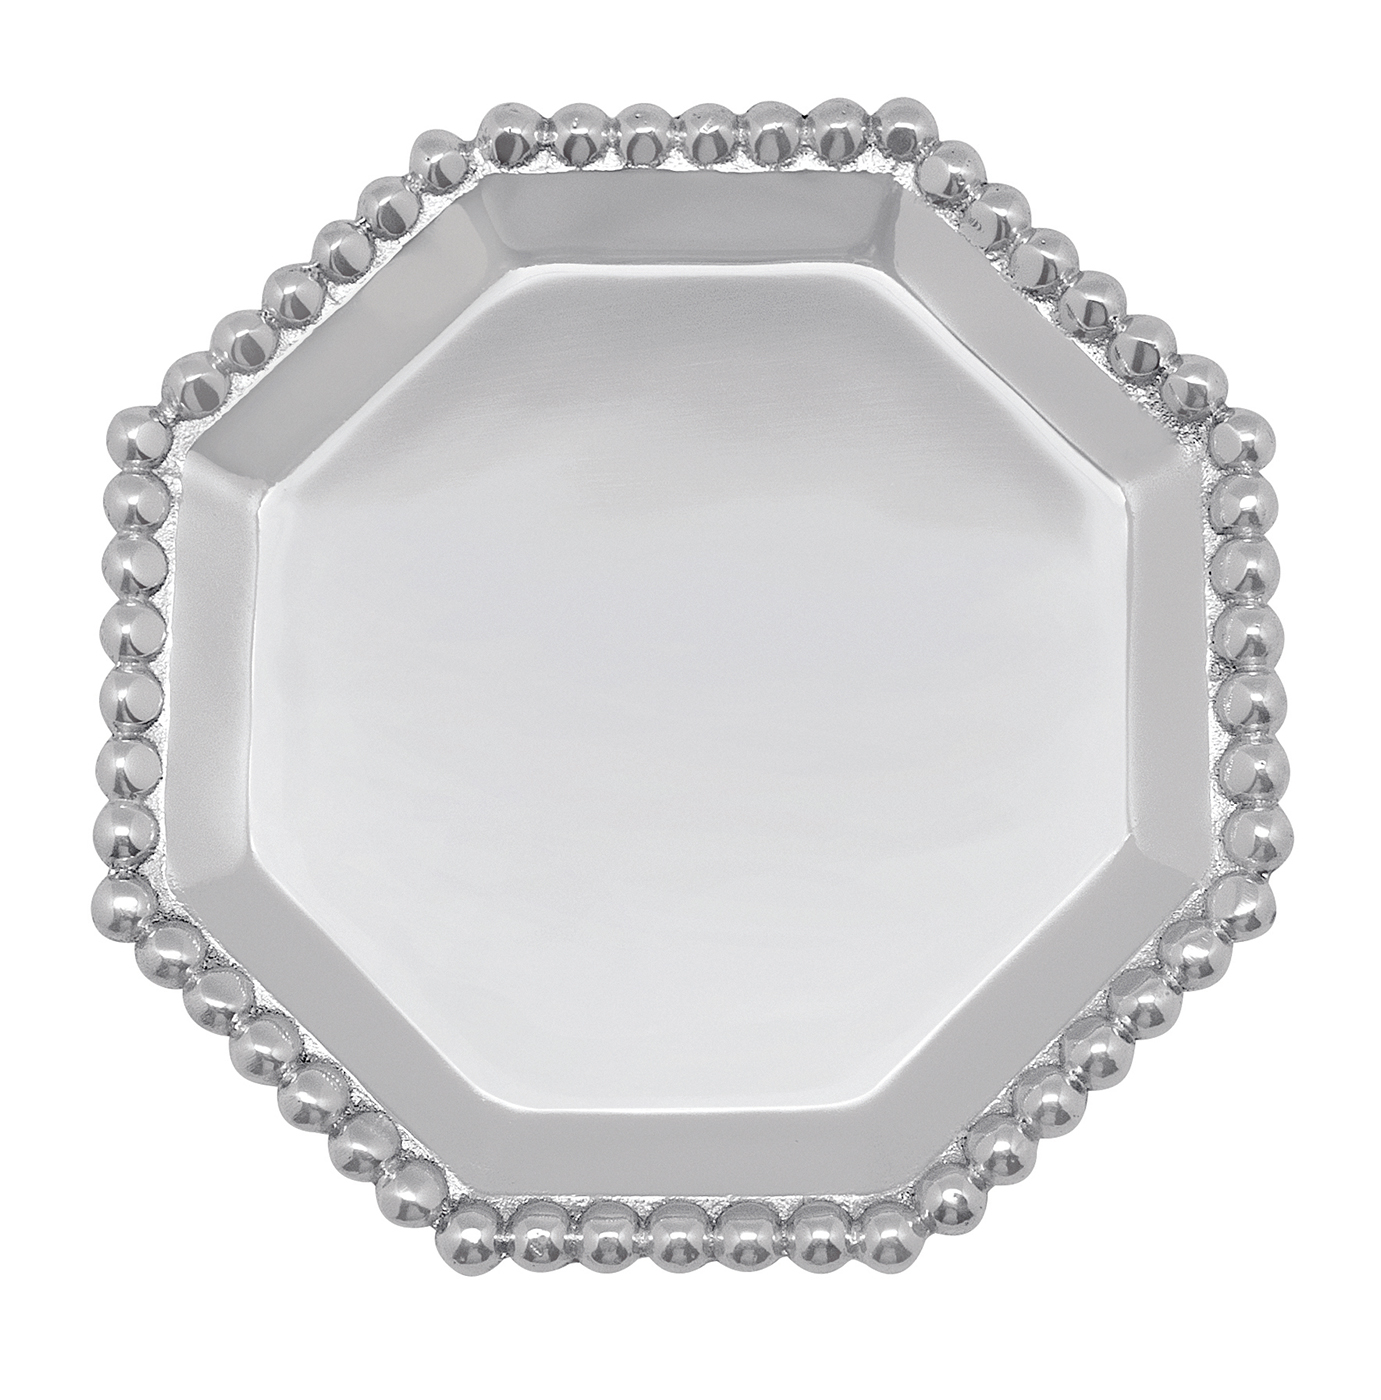 Pearled octagonal canape plate by mariposa for What is a canape plate used for